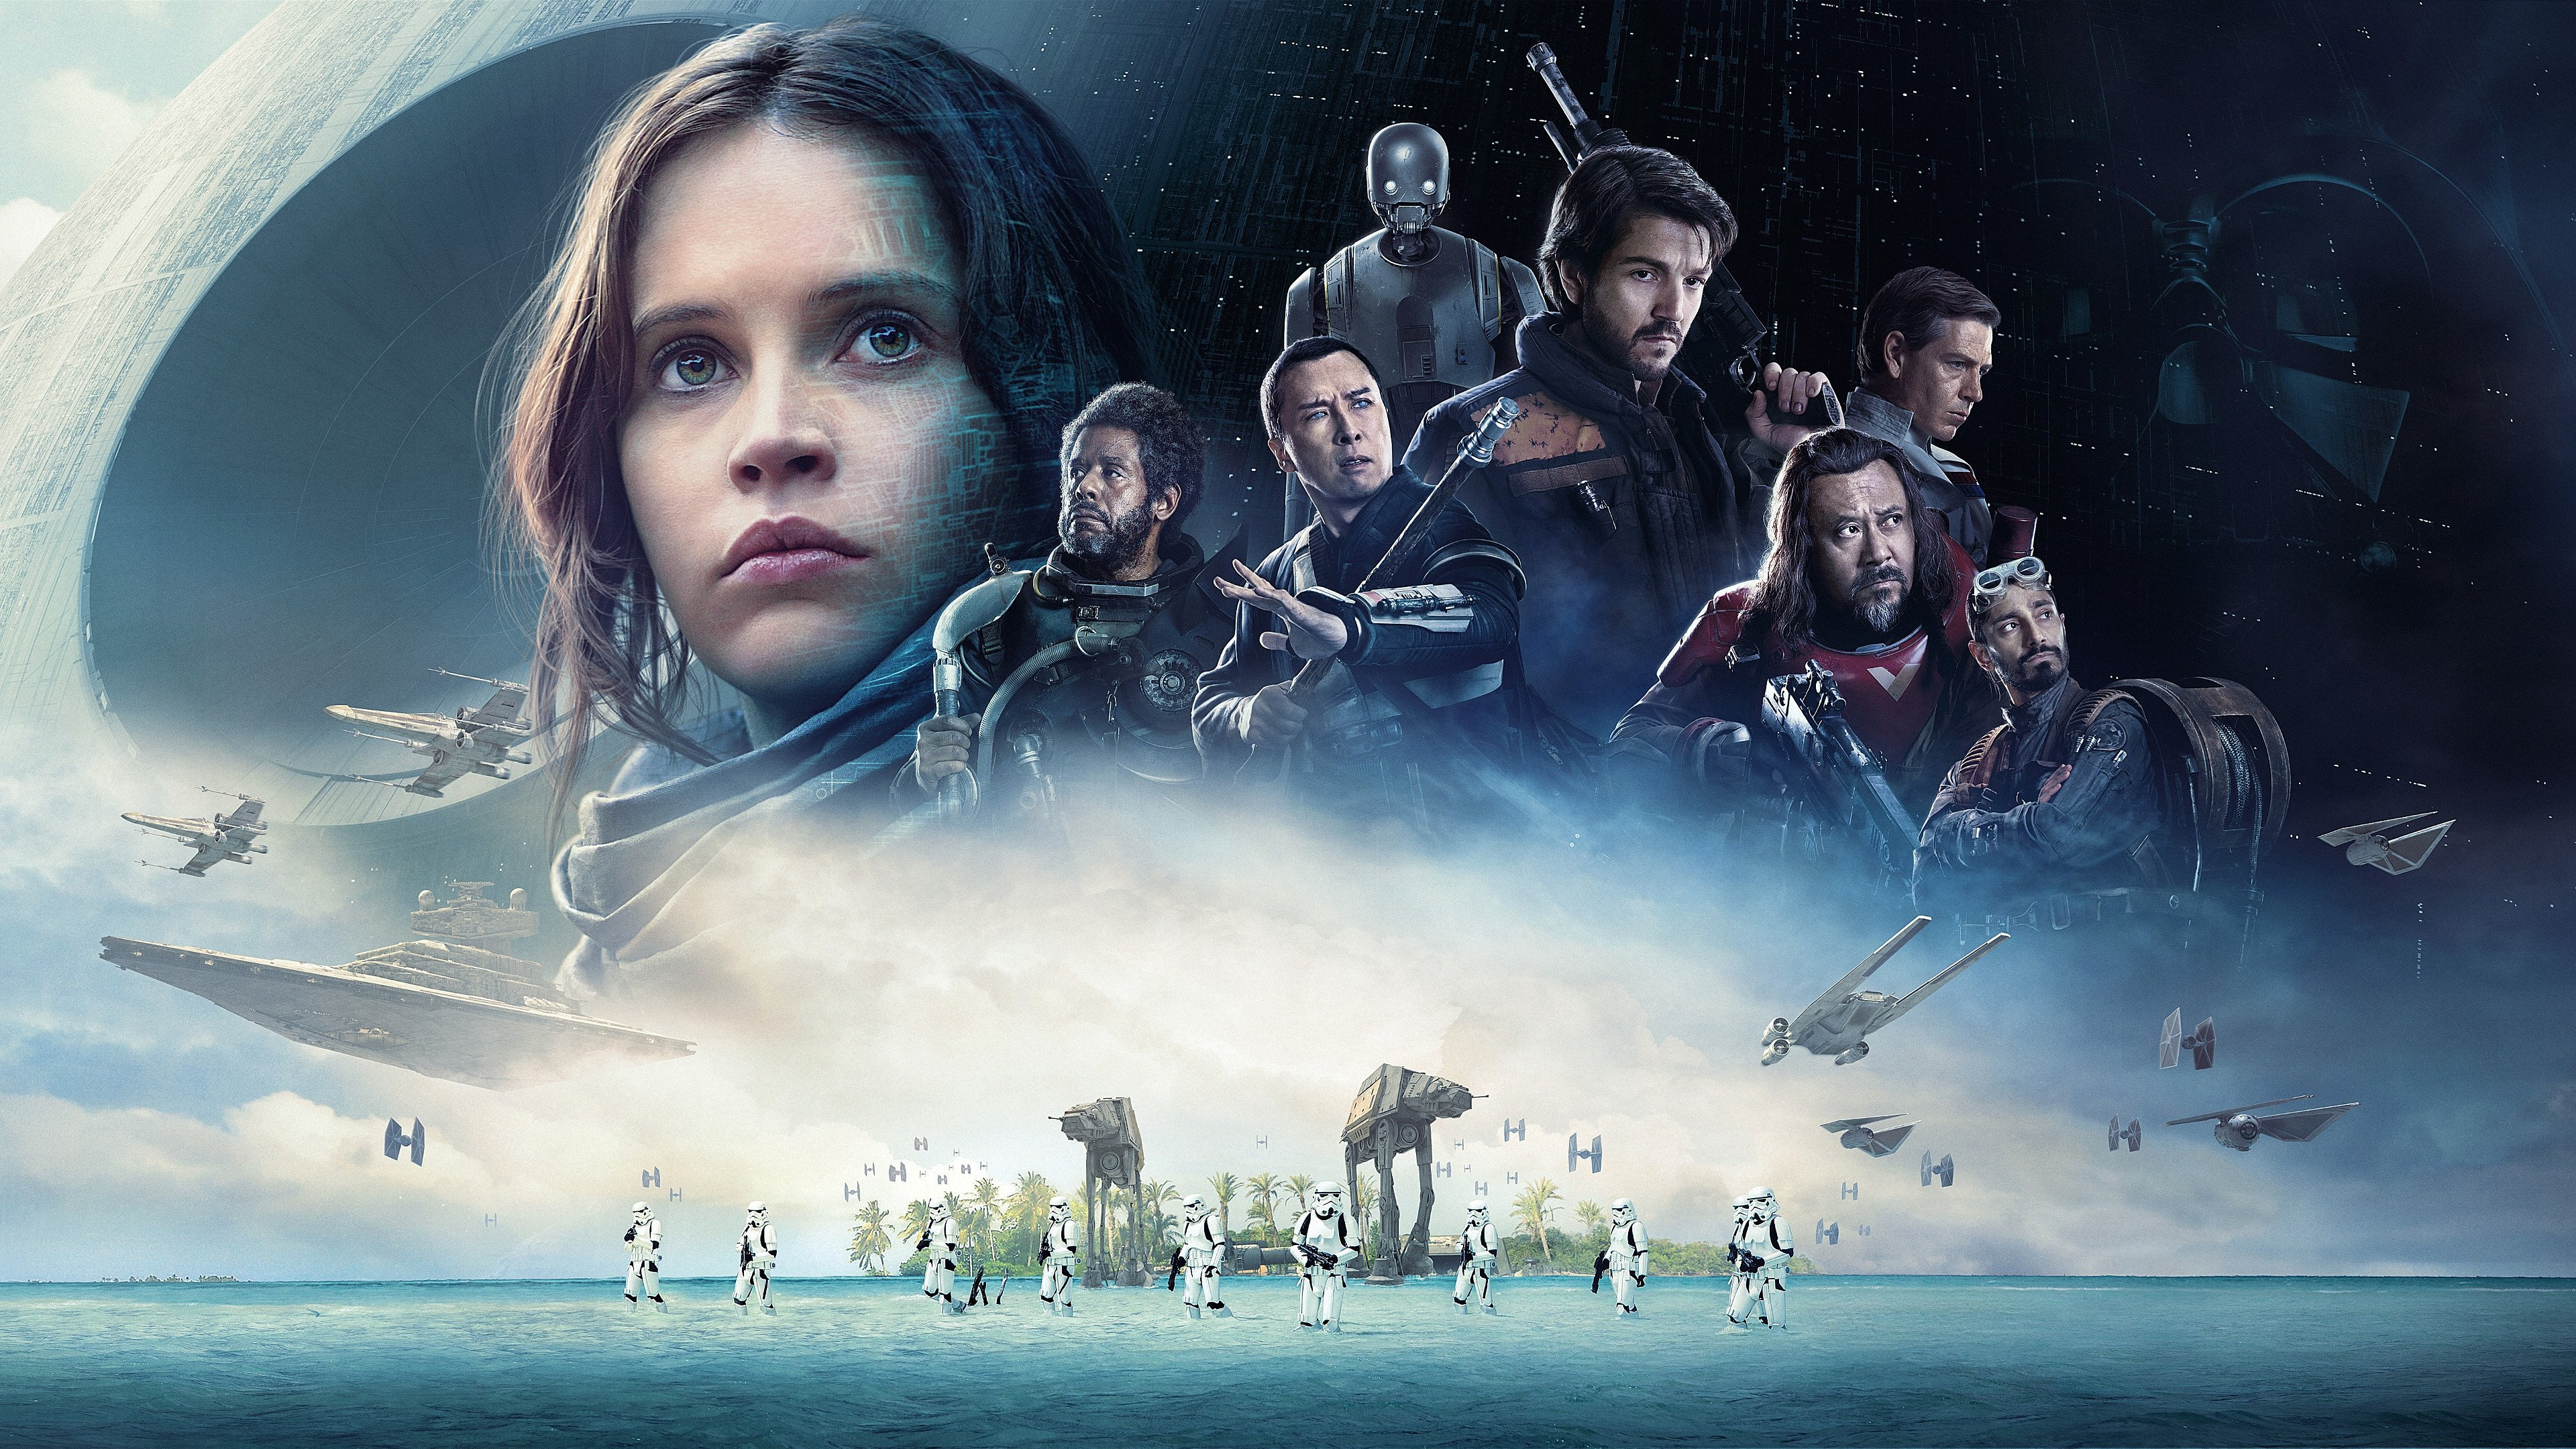 a plot review of the film star wars as a mythology Gareth edwards' take on a first-of its-kind star wars movie can felicity jones channel the force into this standalone adventure or will this spin-off be reduced to stardust.